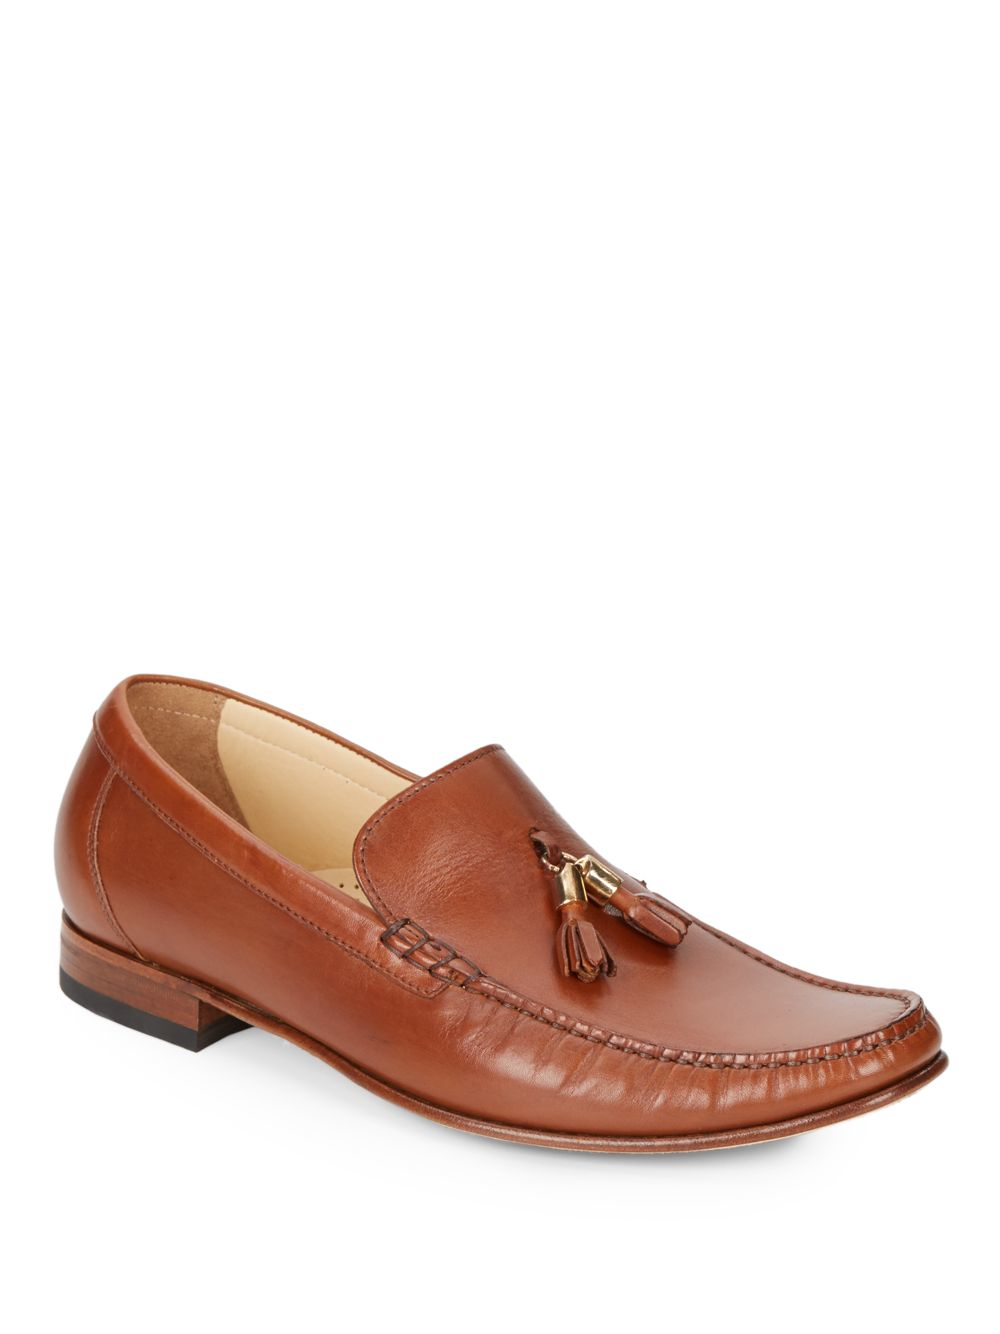 Lanvin Men S Shoes From Zappos